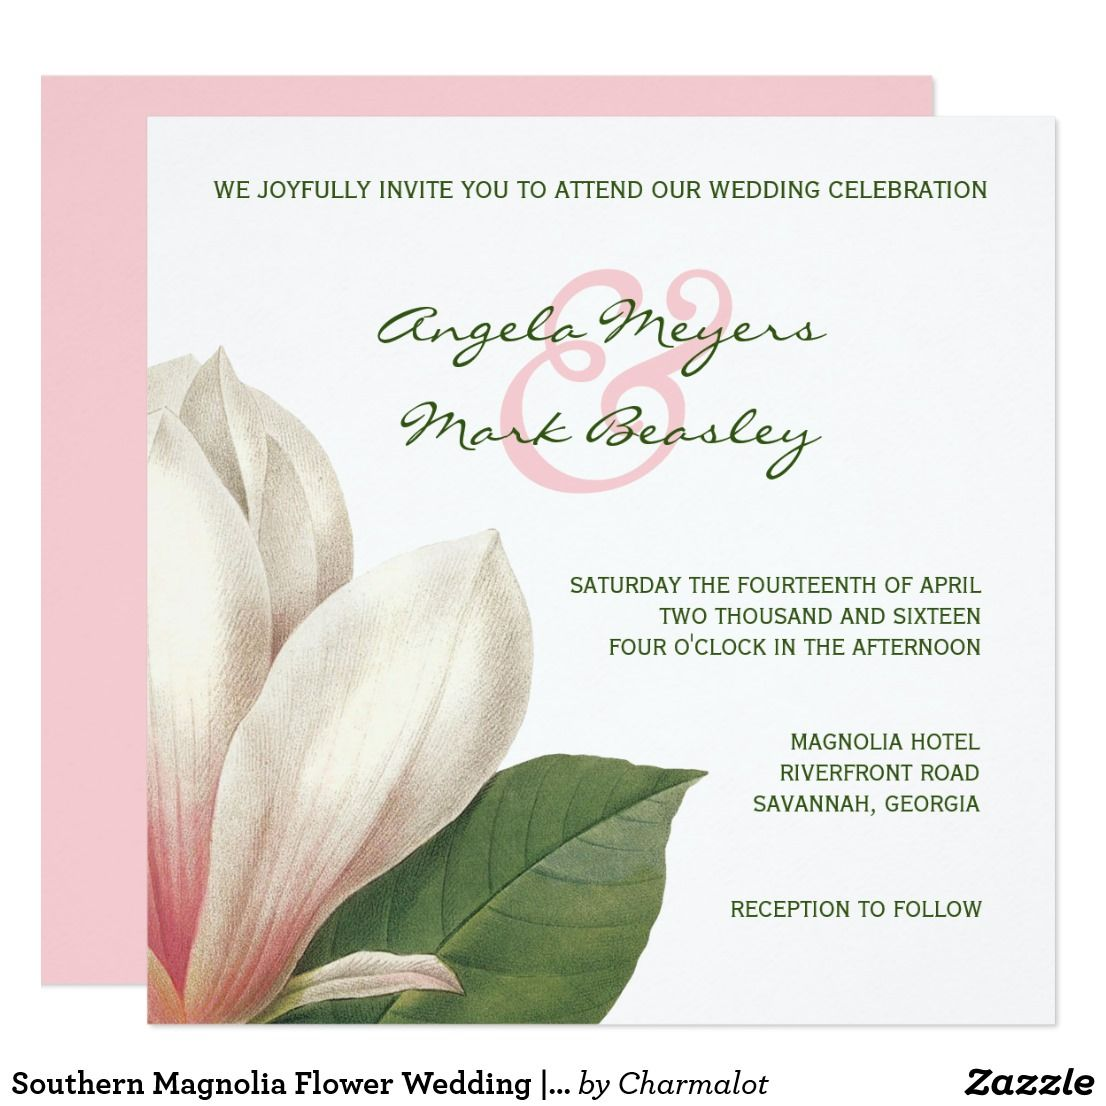 Southern Magnolia Flower Wedding Pink And White Invitation Vintage Southern Magnolia Tree Flowe Magnolia Wedding Invitations Magnolia Wedding Magnolia Flower